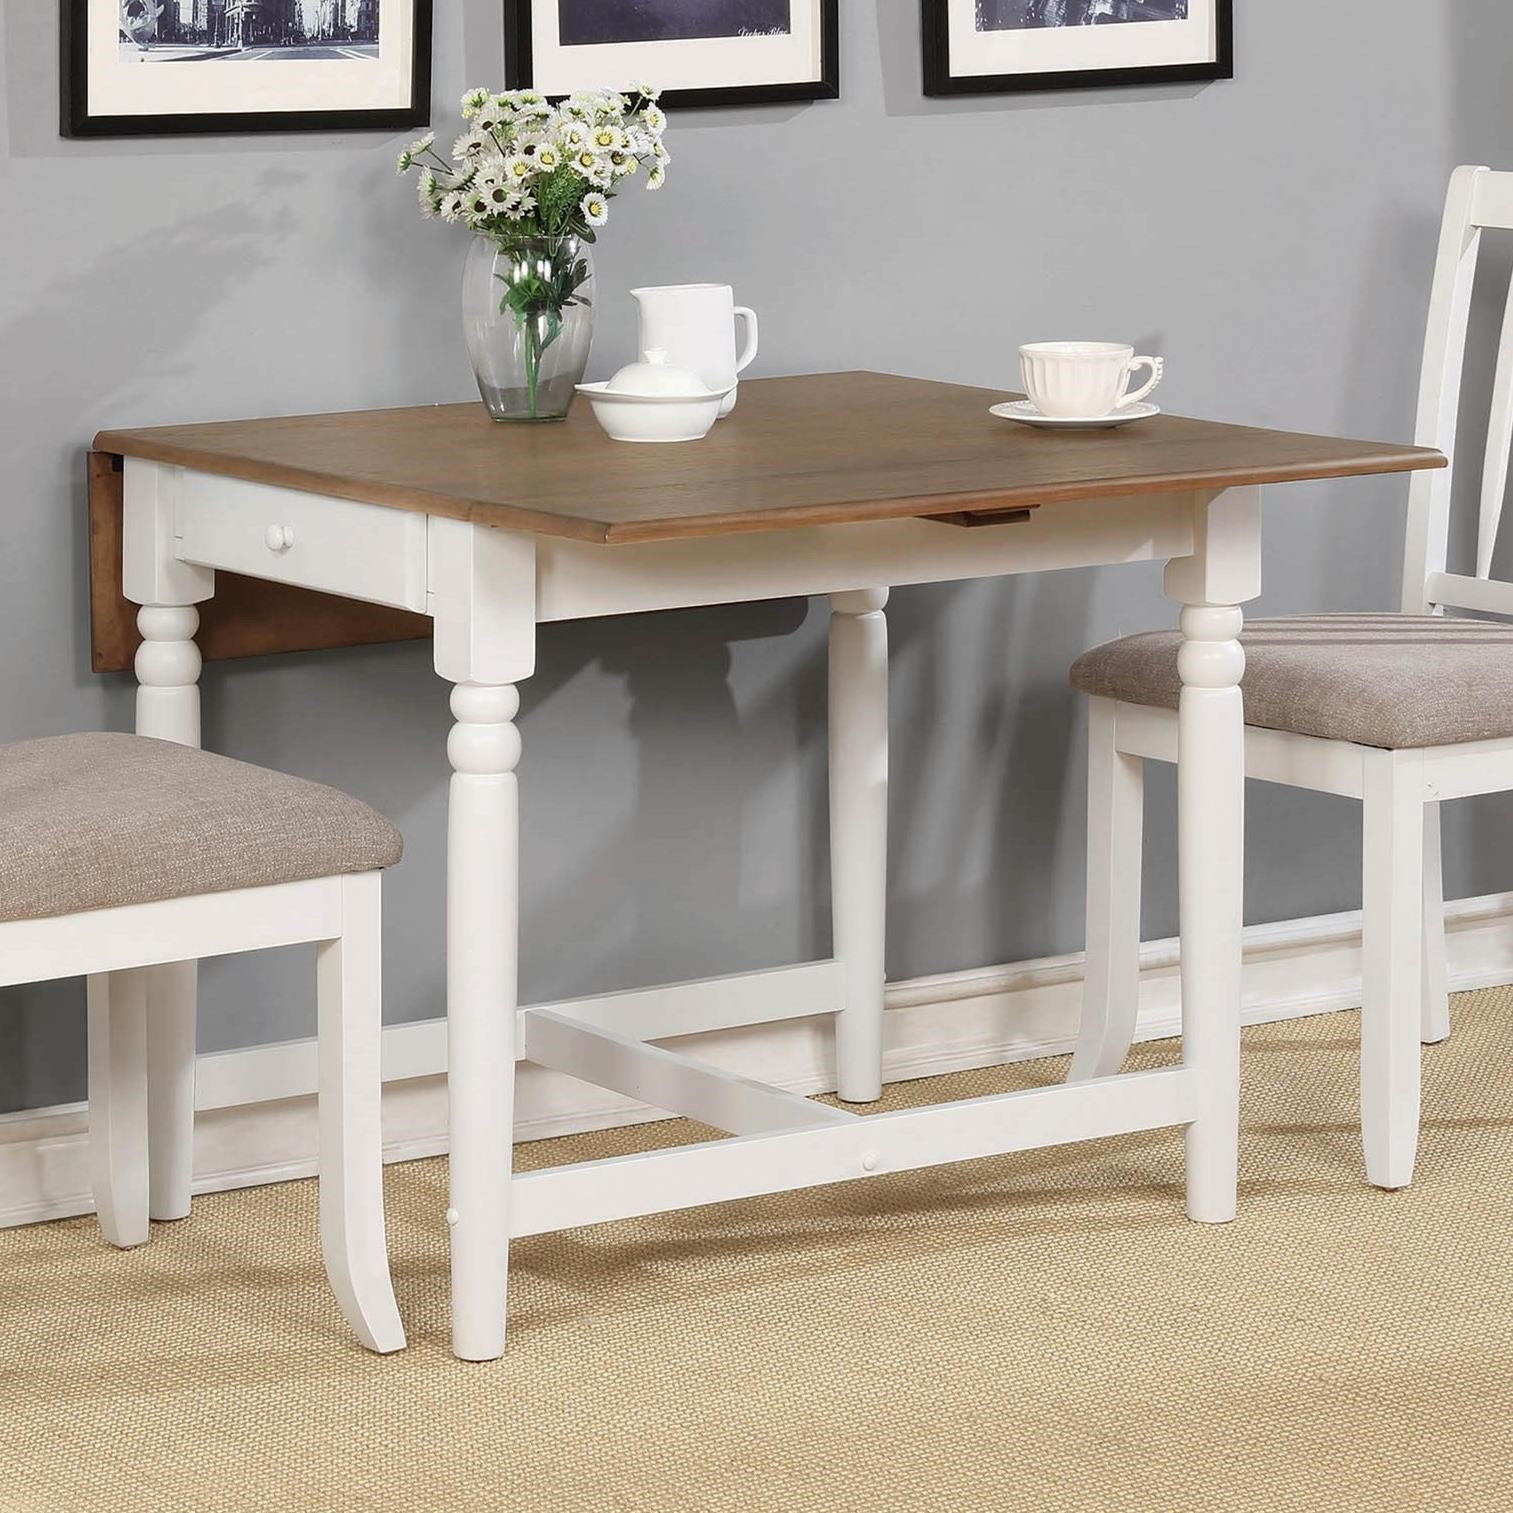 Hesperia Dining Table by Coaster at Lapeer Furniture & Mattress Center